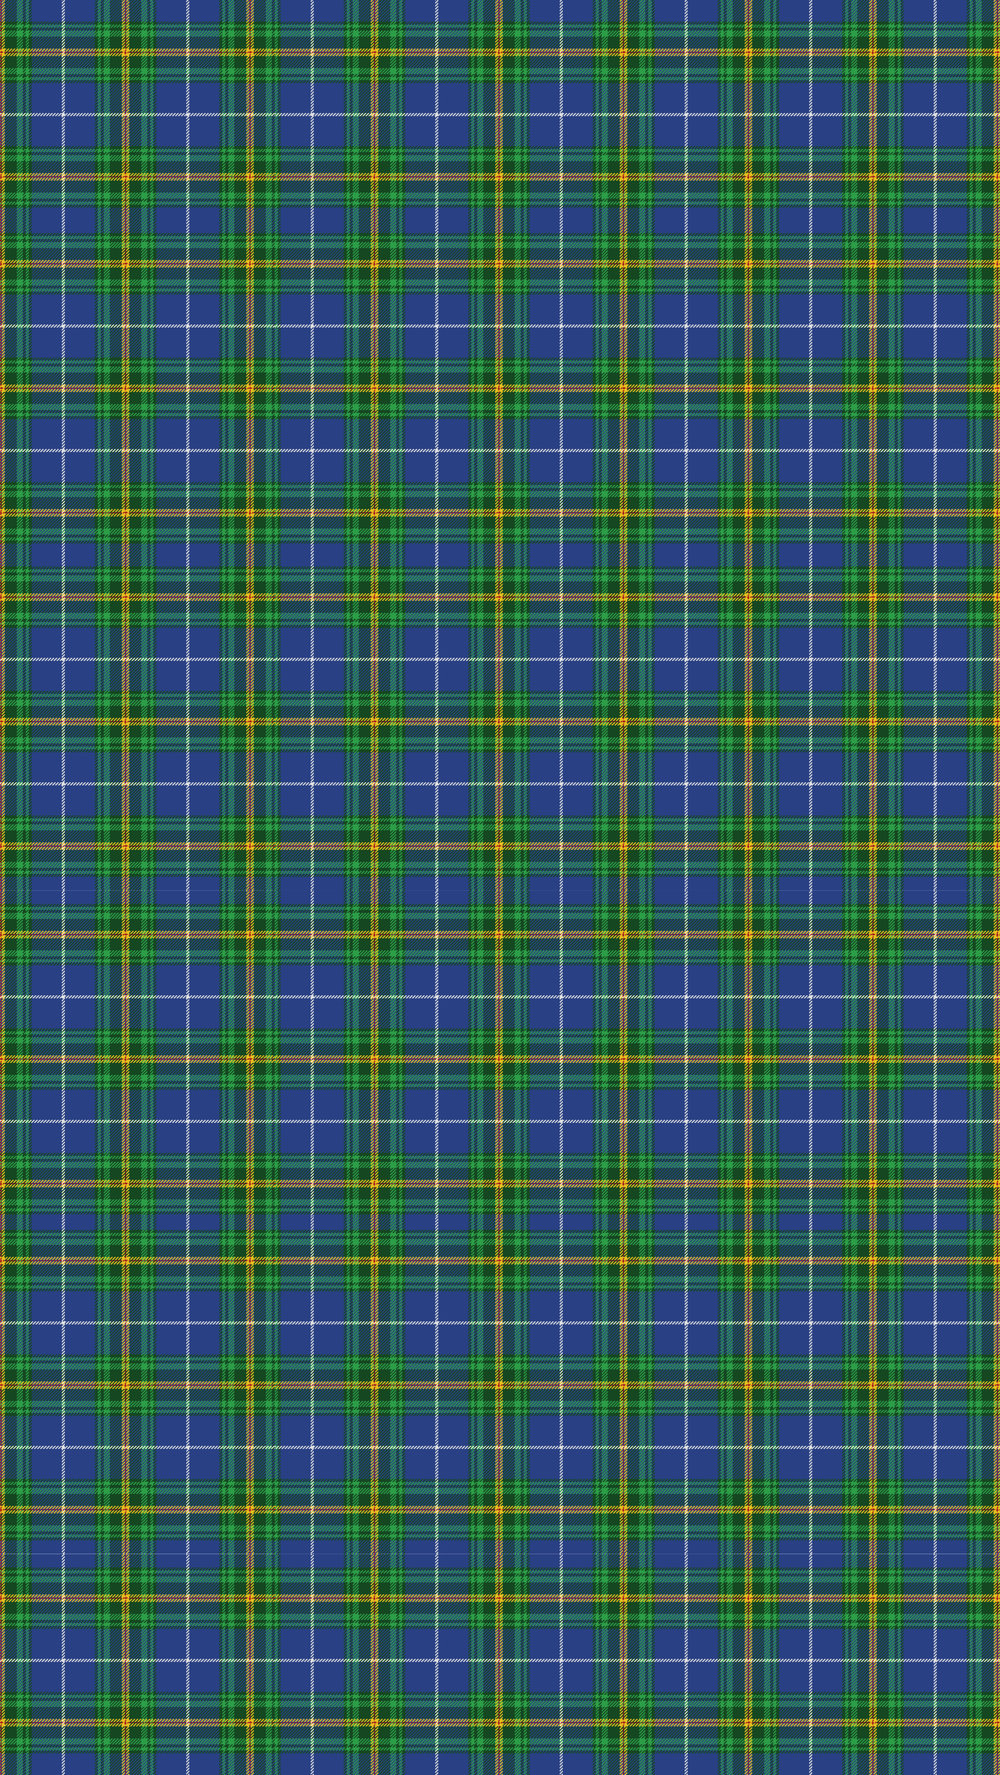 NS Tartan - iphone 5, 5S, 5C.jpg